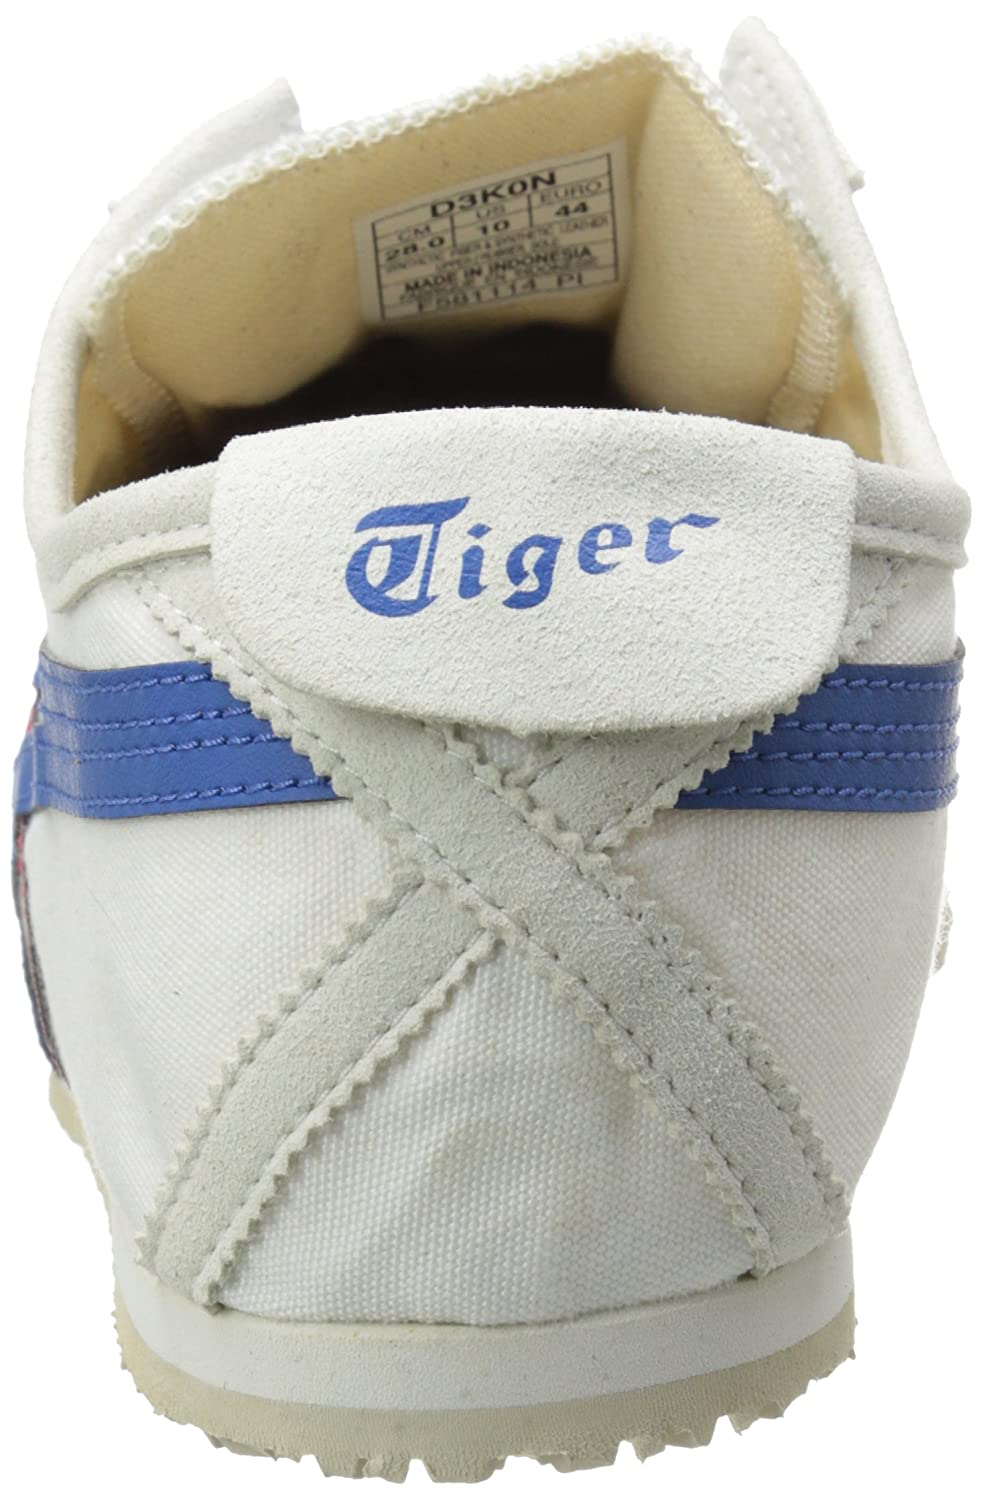 Onitsuka Tiger Mexico 66 Slip-On Classic Running US|White/Tricolor Sneaker B00L8IZ6SO 6.5 M US|White/Tricolor Running 19a3c8